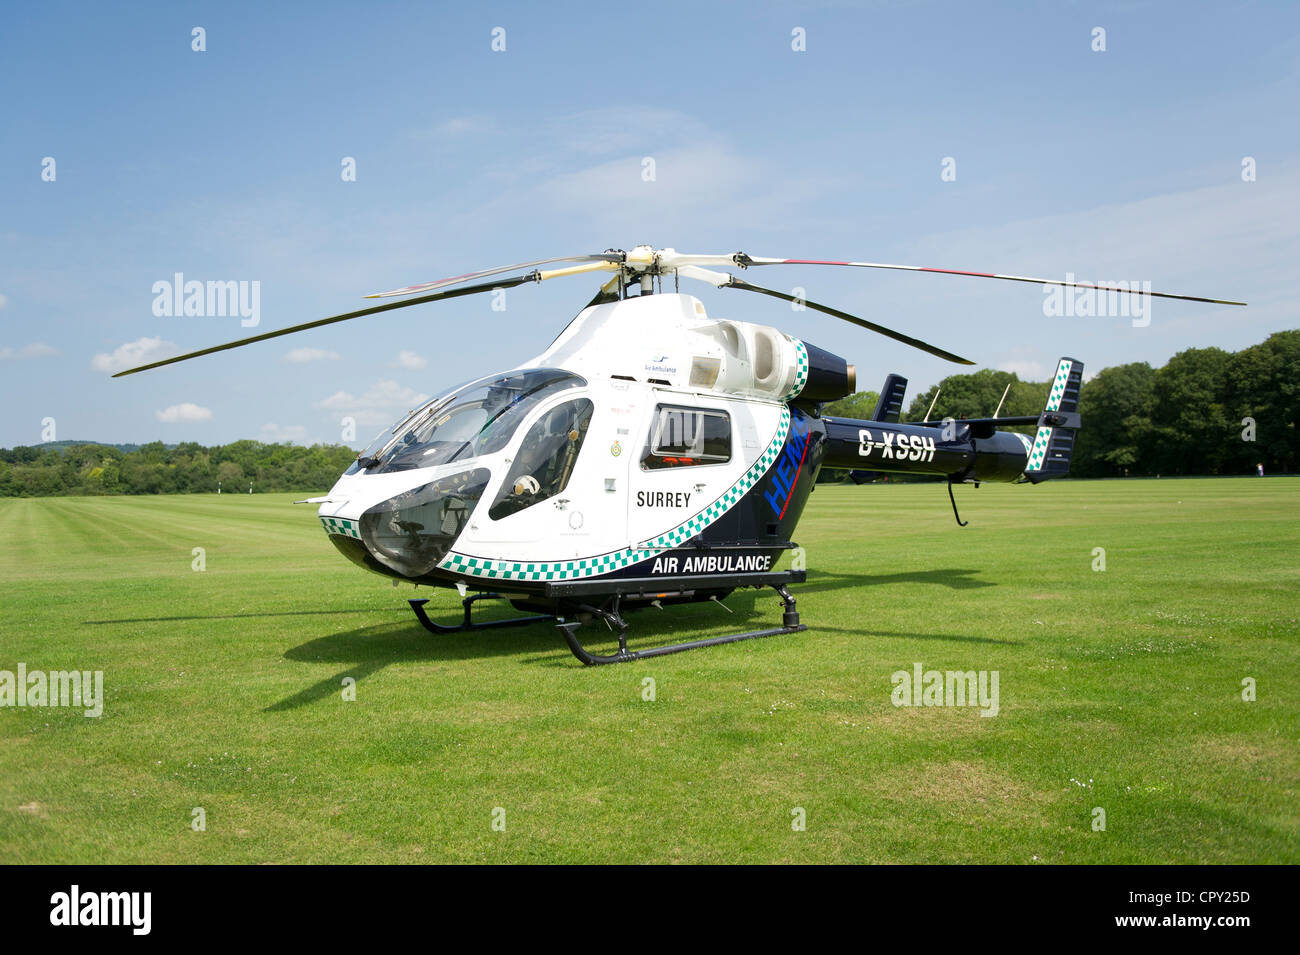 Kent, Surrey and Sussex Air Ambulance awaiting take off from Polo ground - Stock Image